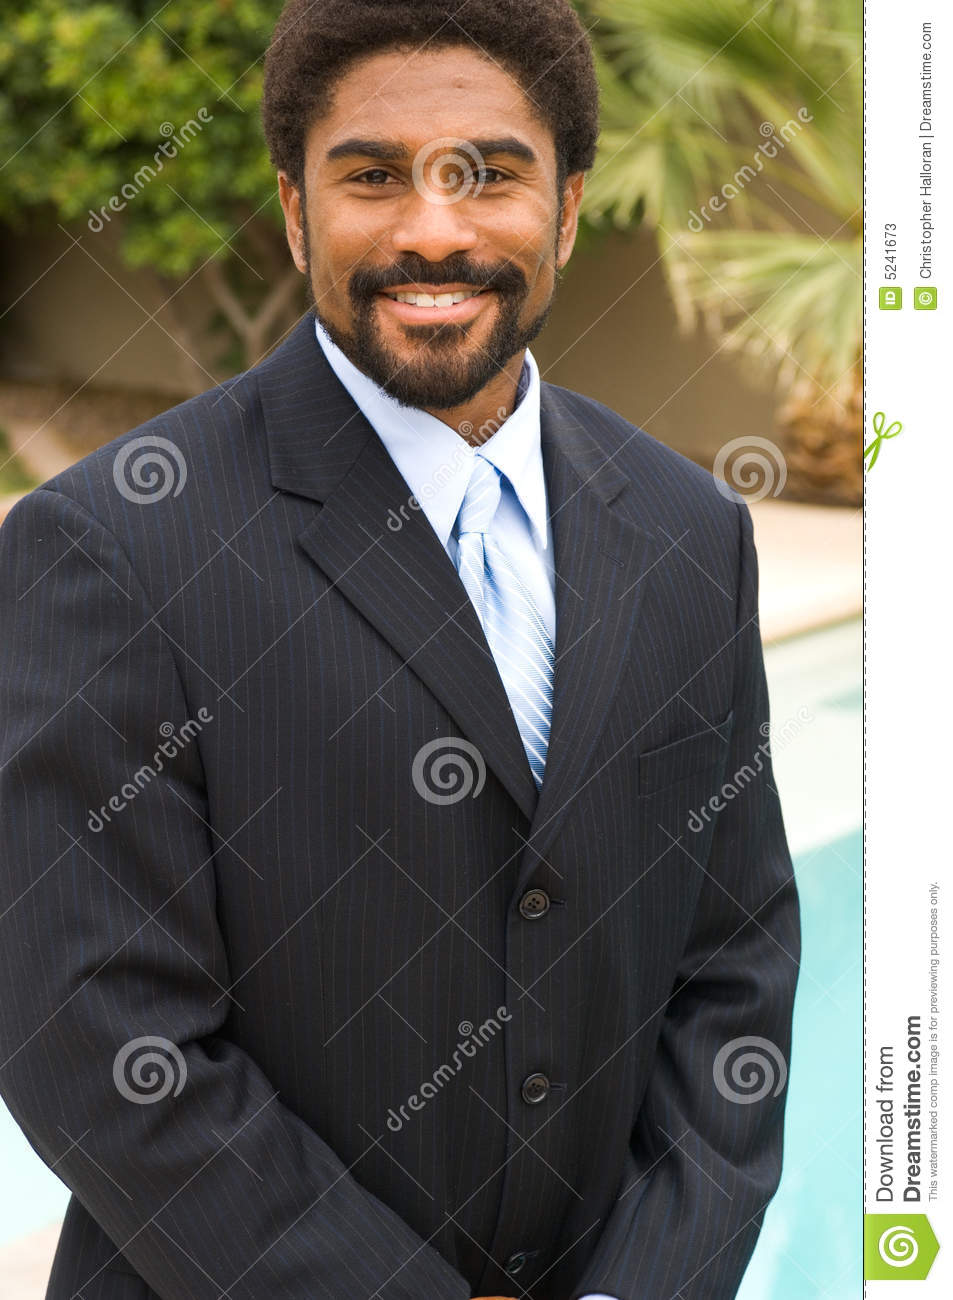 Handsome African-American man